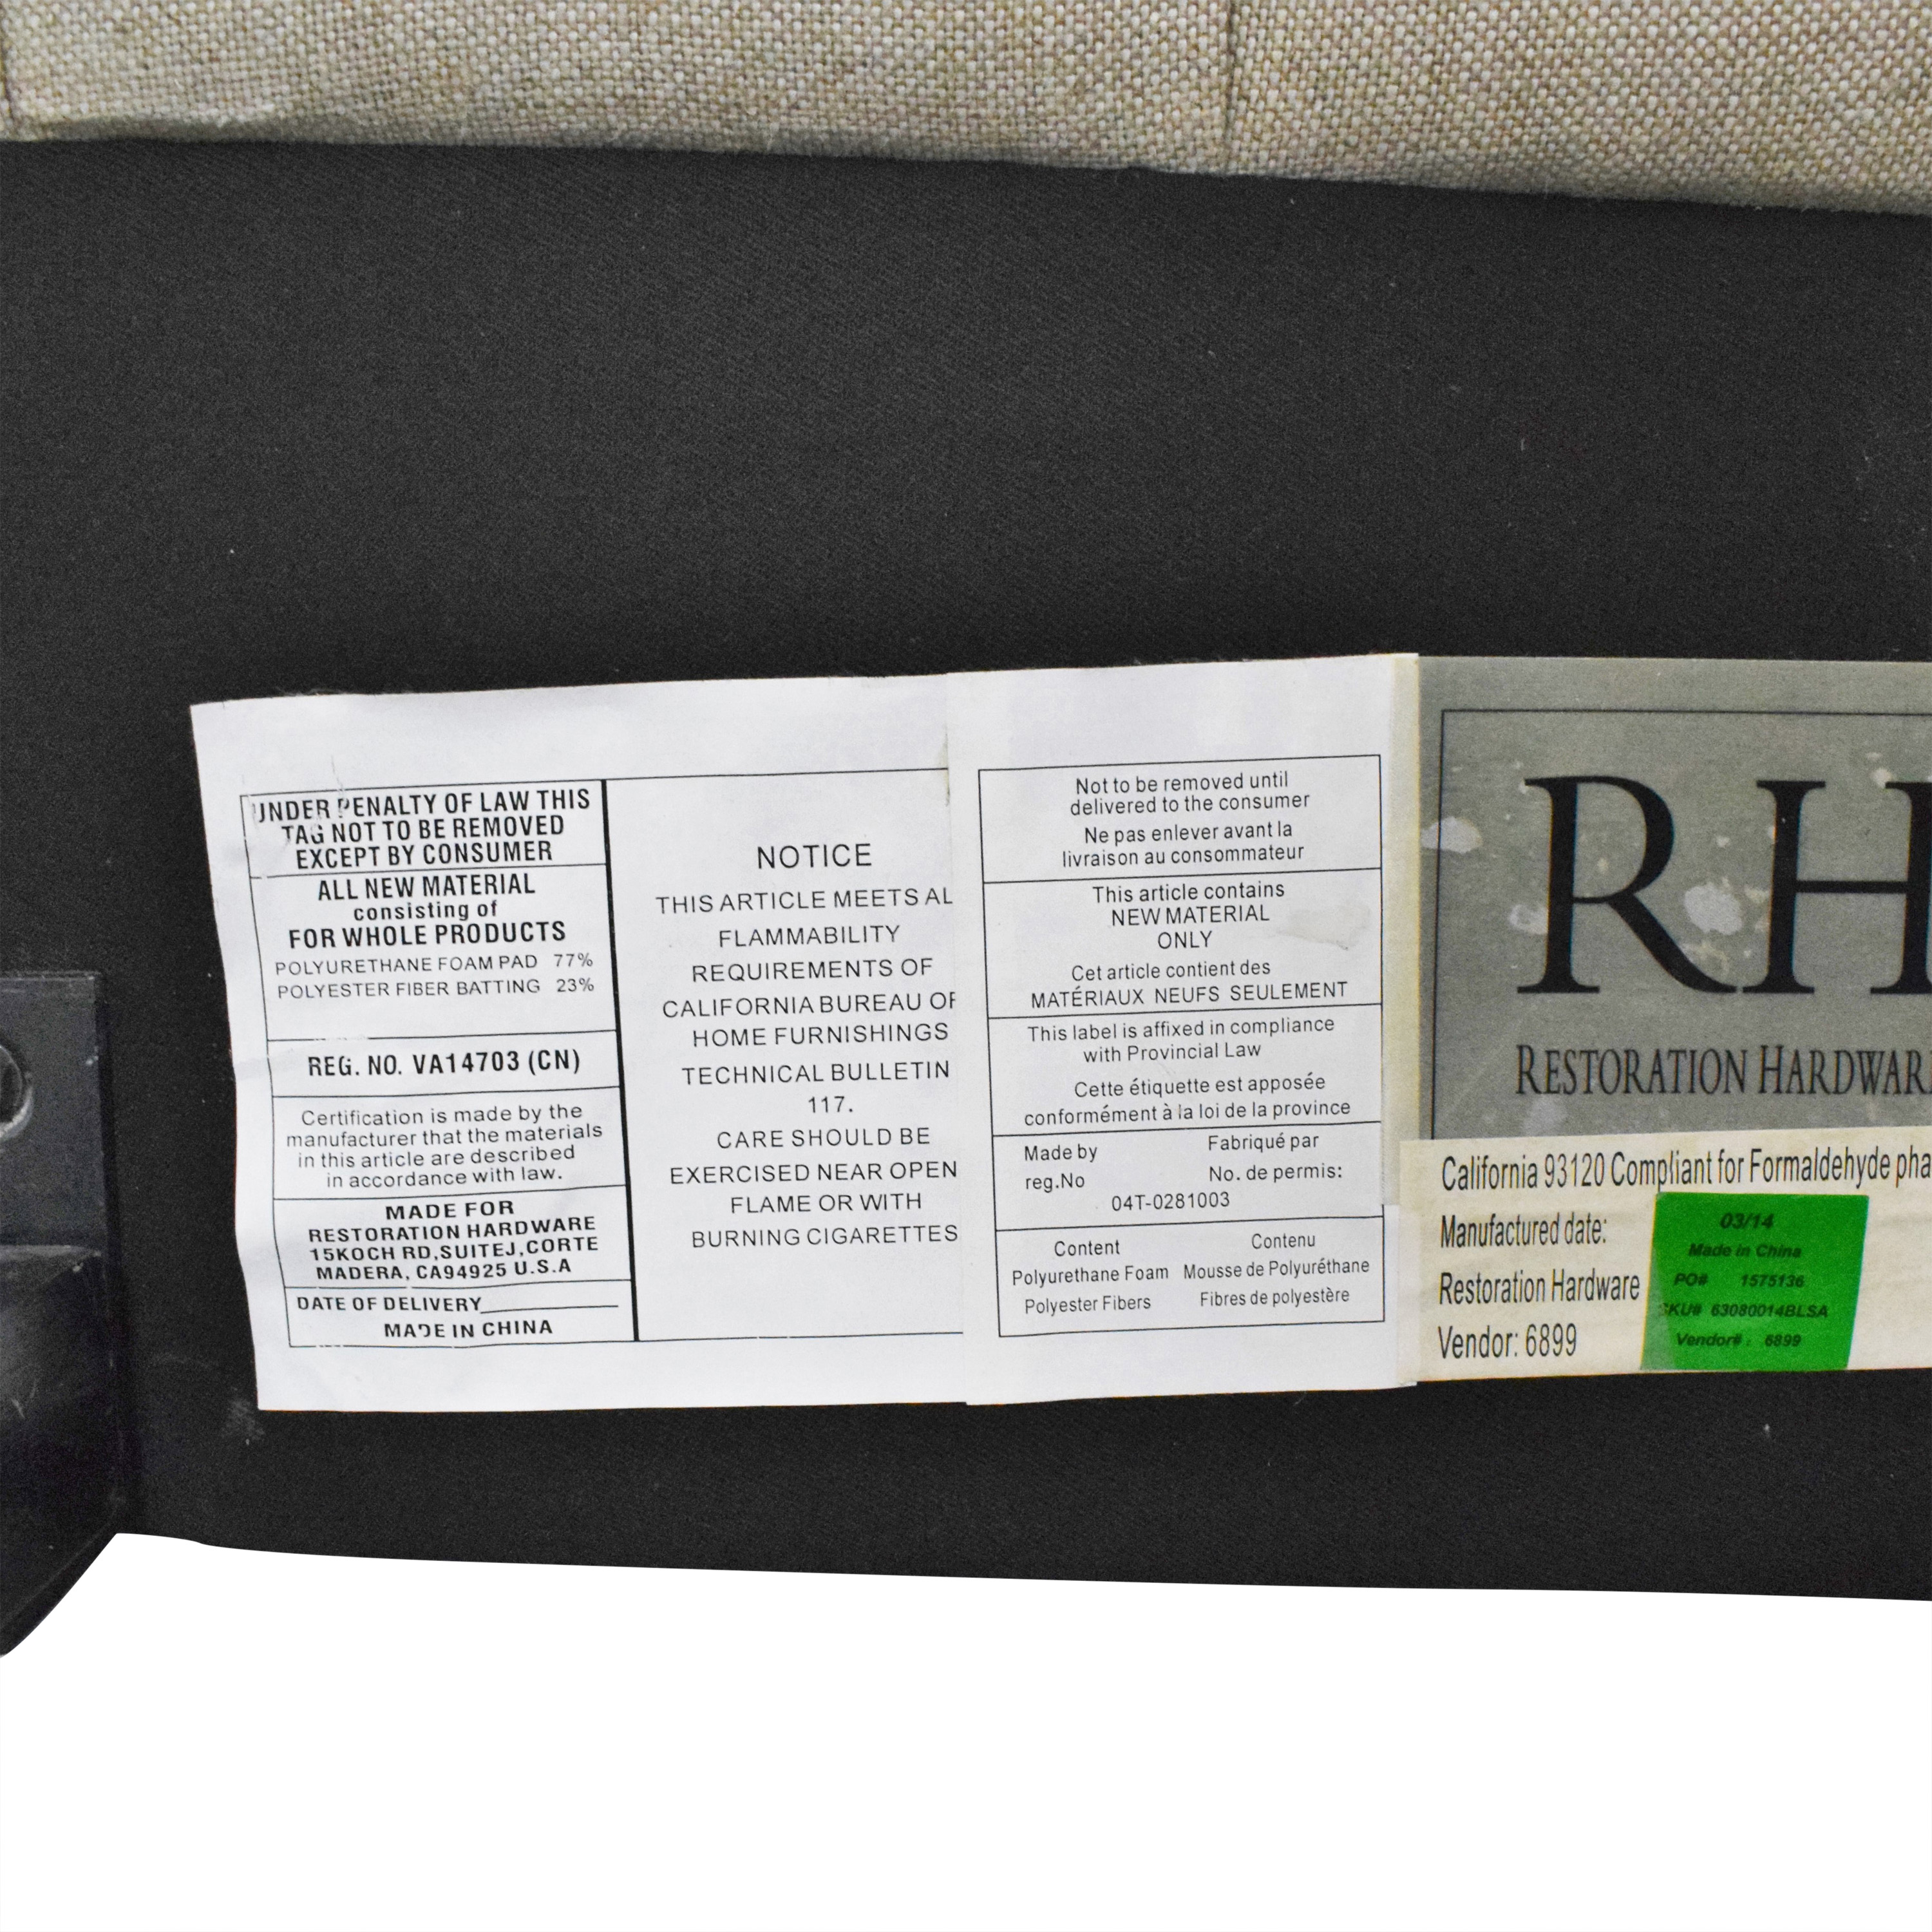 Restoration Hardware Restoration Hardware Tufted Upholstered Queen Bed dimensions